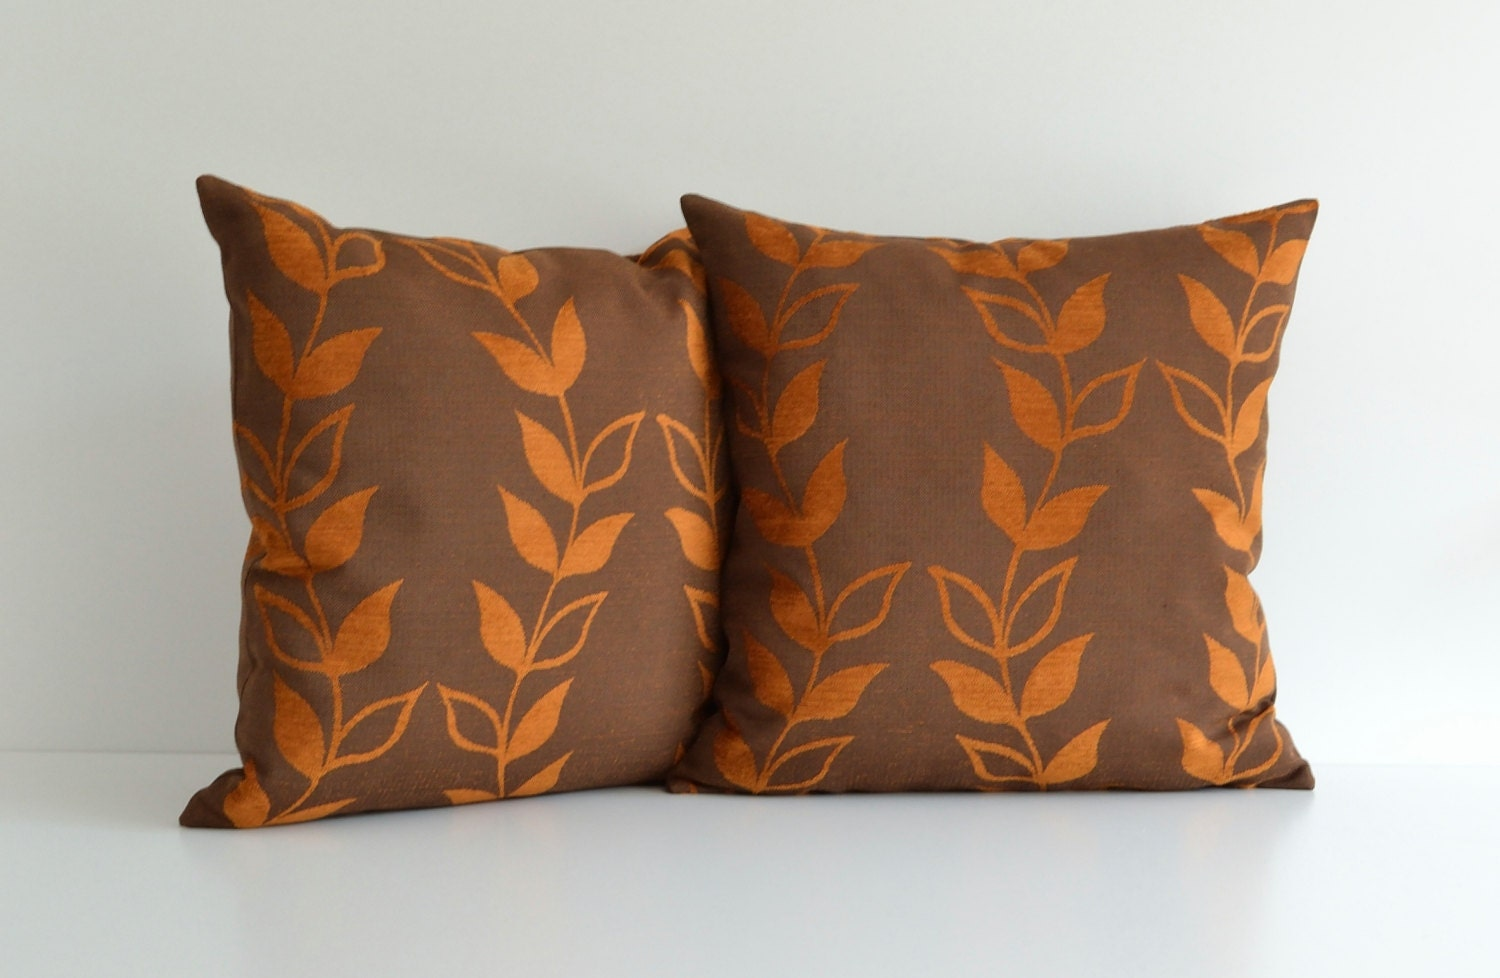 20x20 Orange And Brown Decorative Throw Pillow For Couch